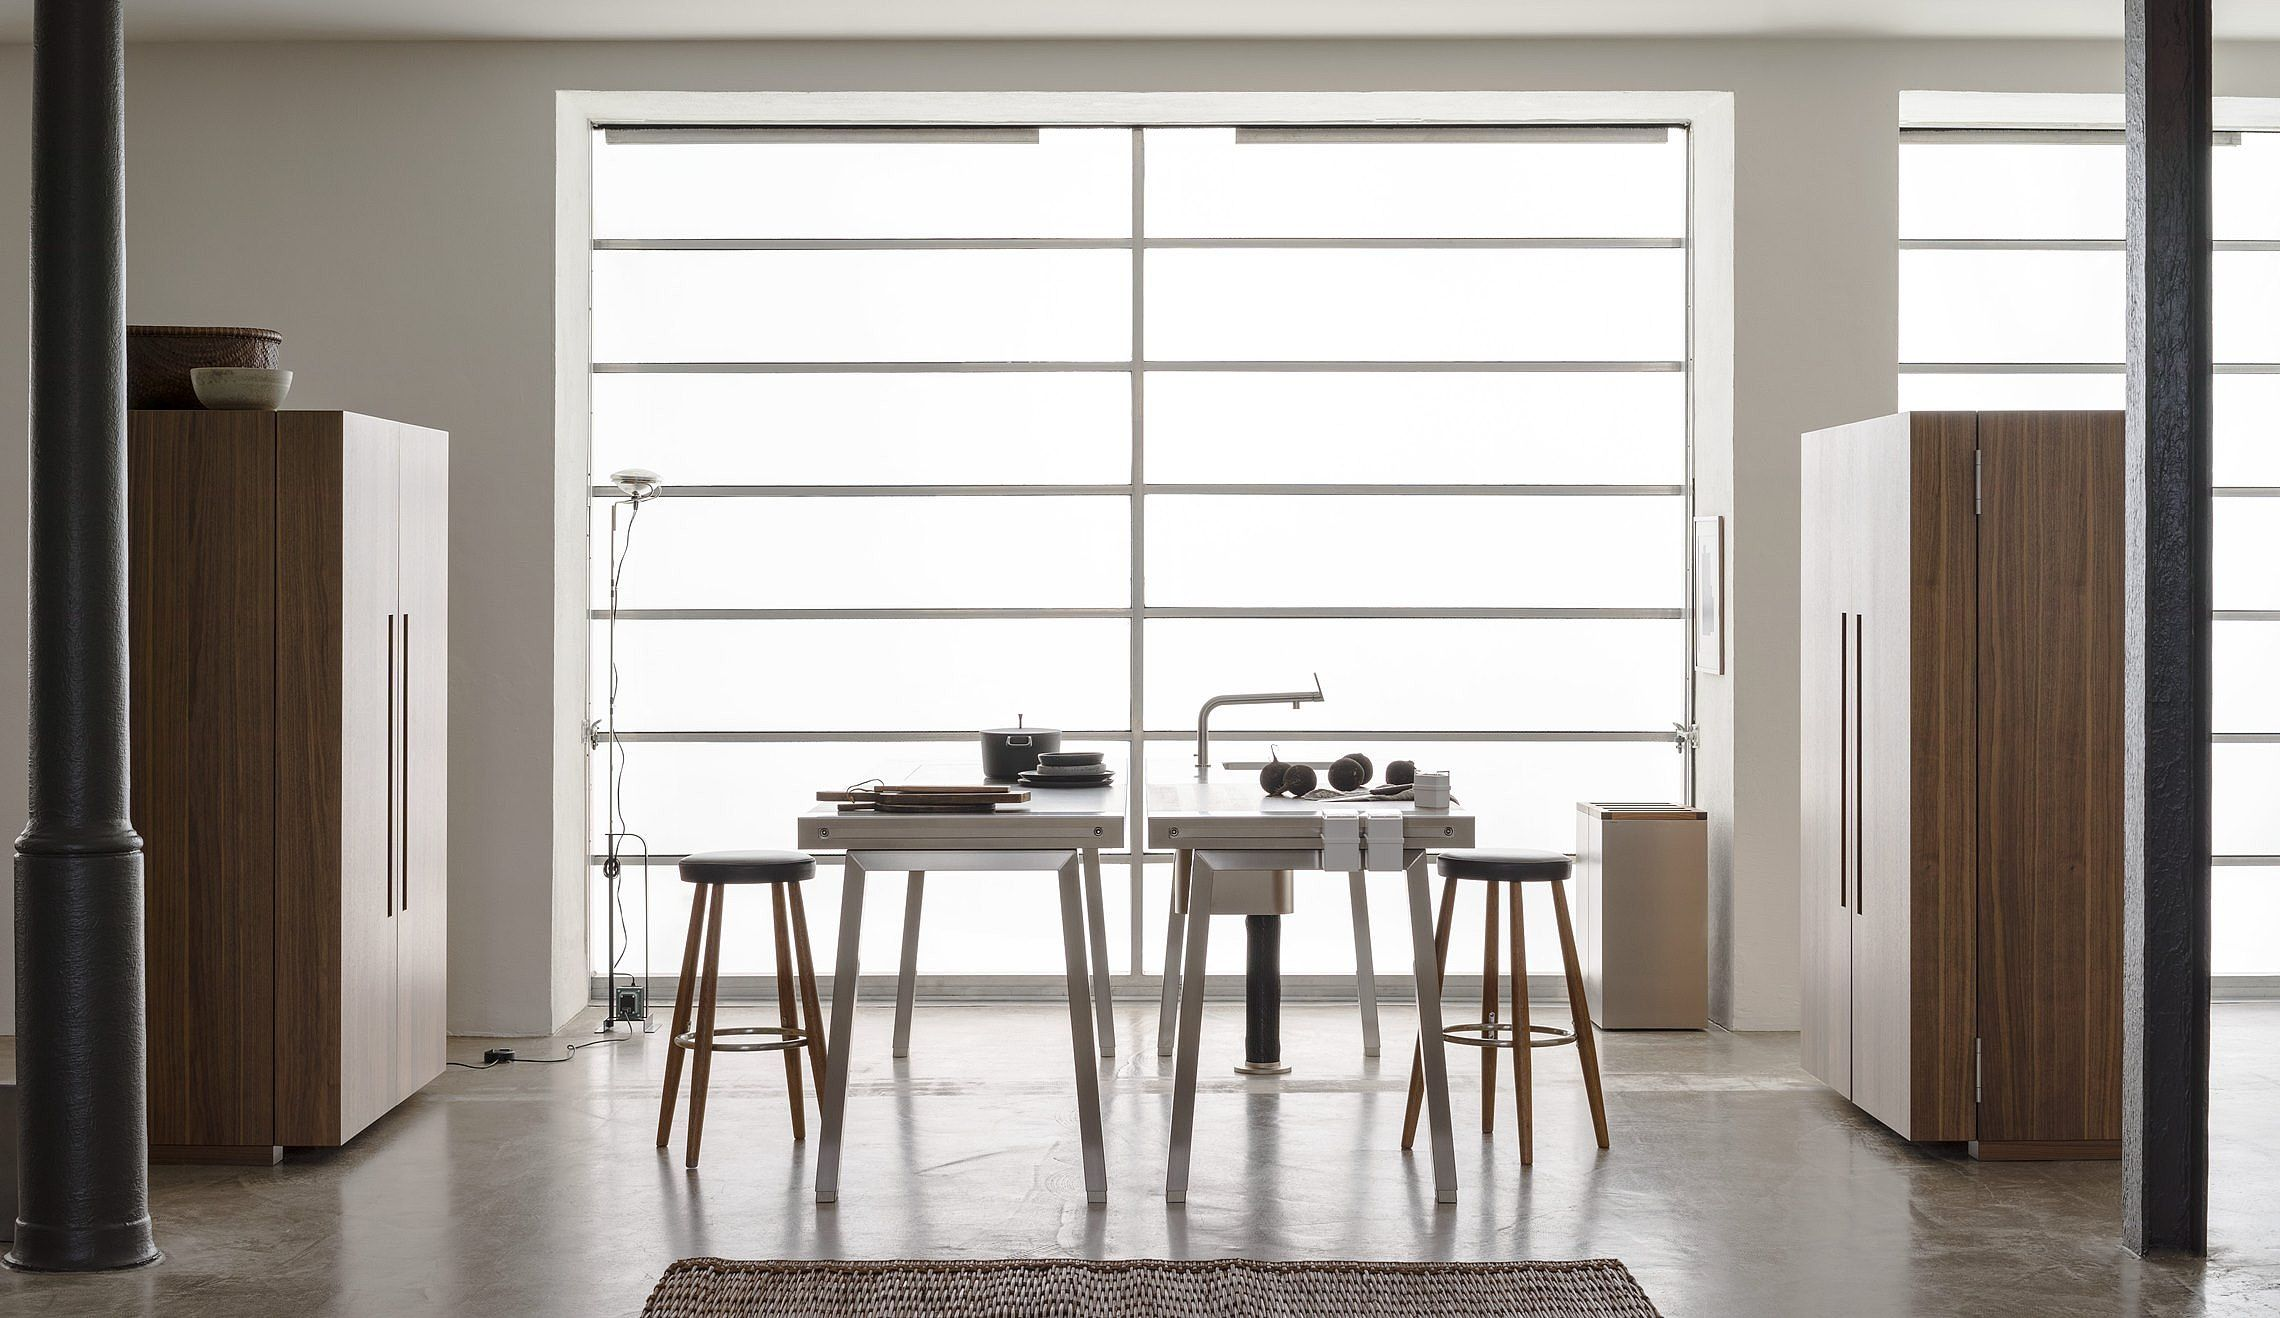 Individually Arranged B2 Elements In The Room Such As Two Workbenches In Connection With Tool Cabinet Kitchen Interior Design Modern Kitchen Workshop Interior